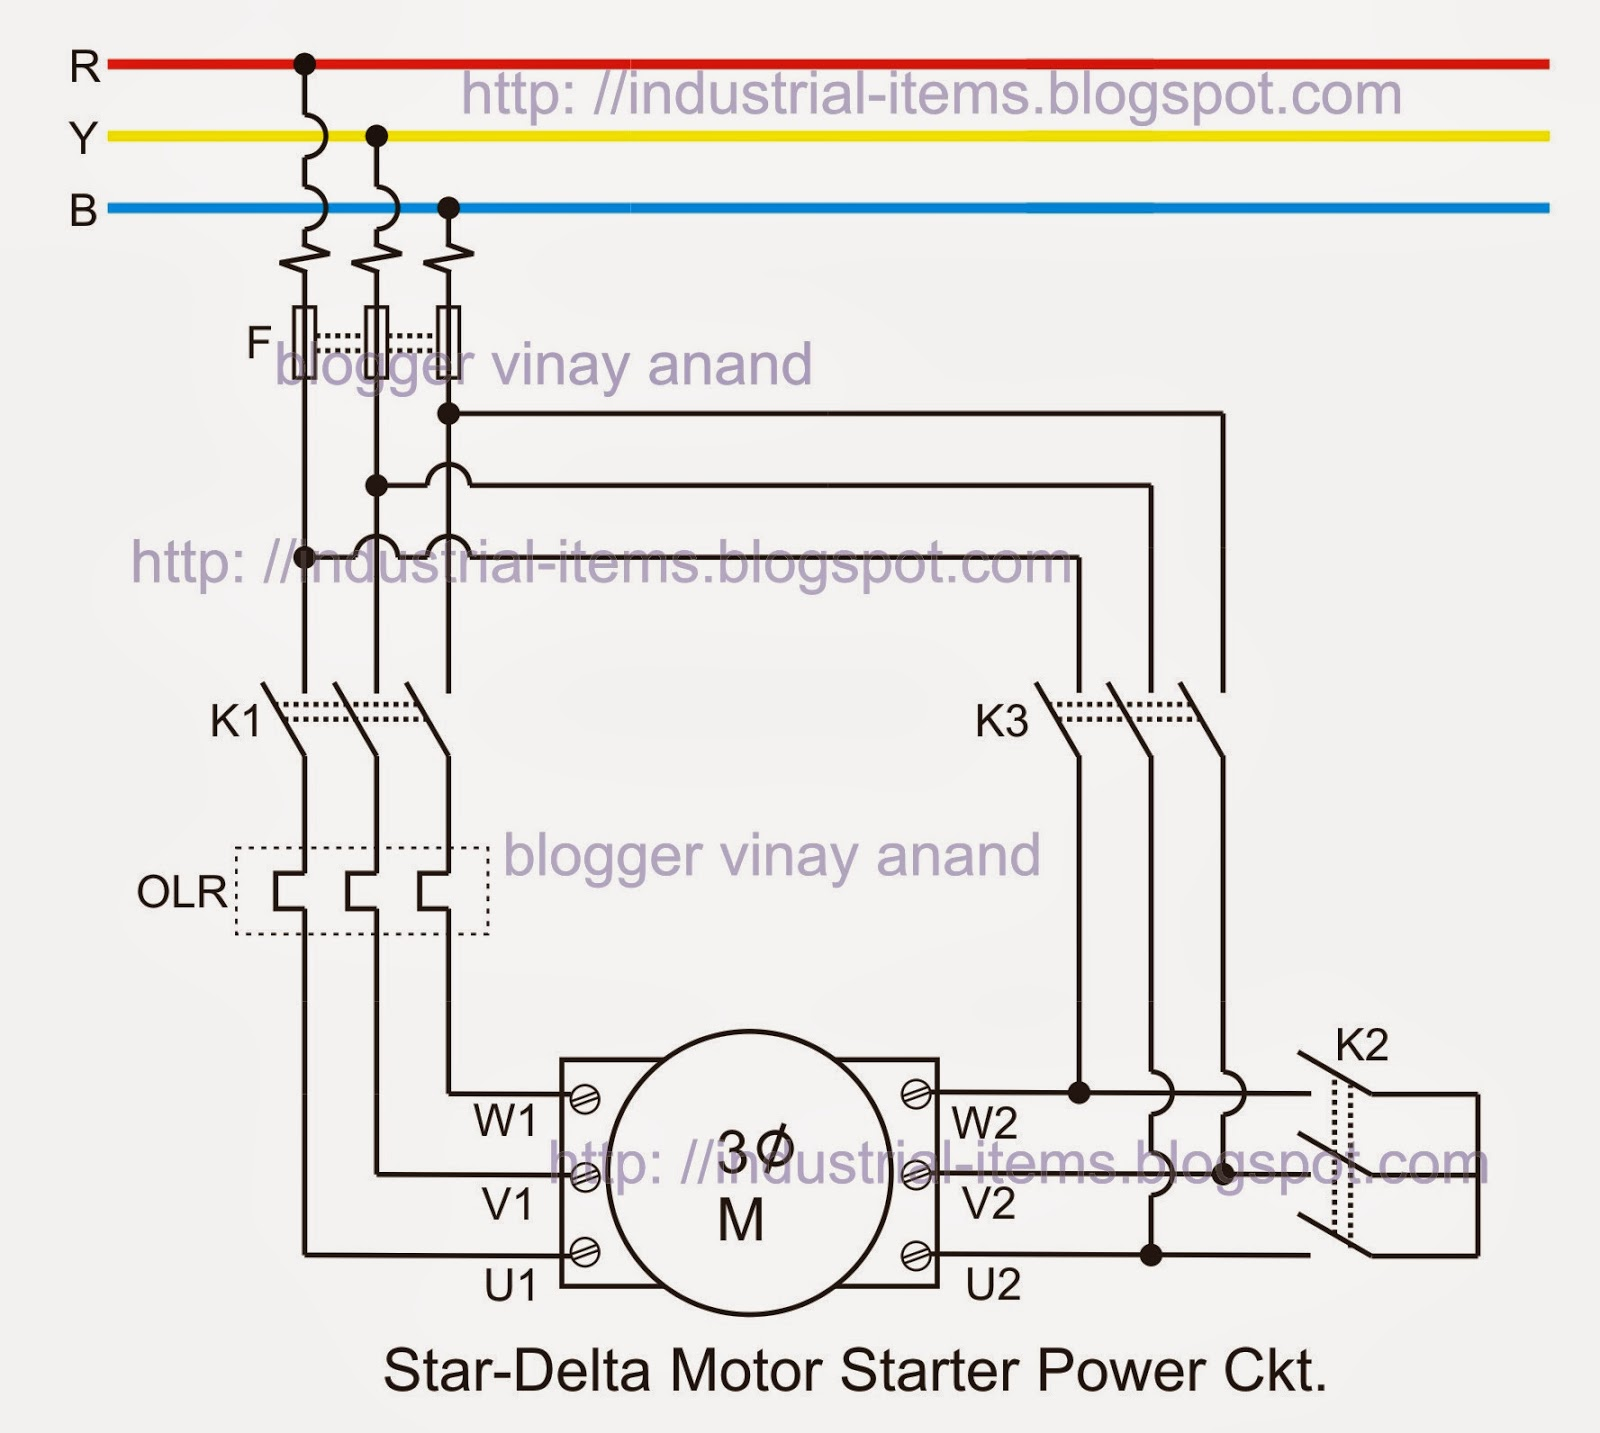 3 Speed Fan Switch Schematic House Wiring Diagram Symbols Hunter Phase Delta Motor For Controls Get Free Image About